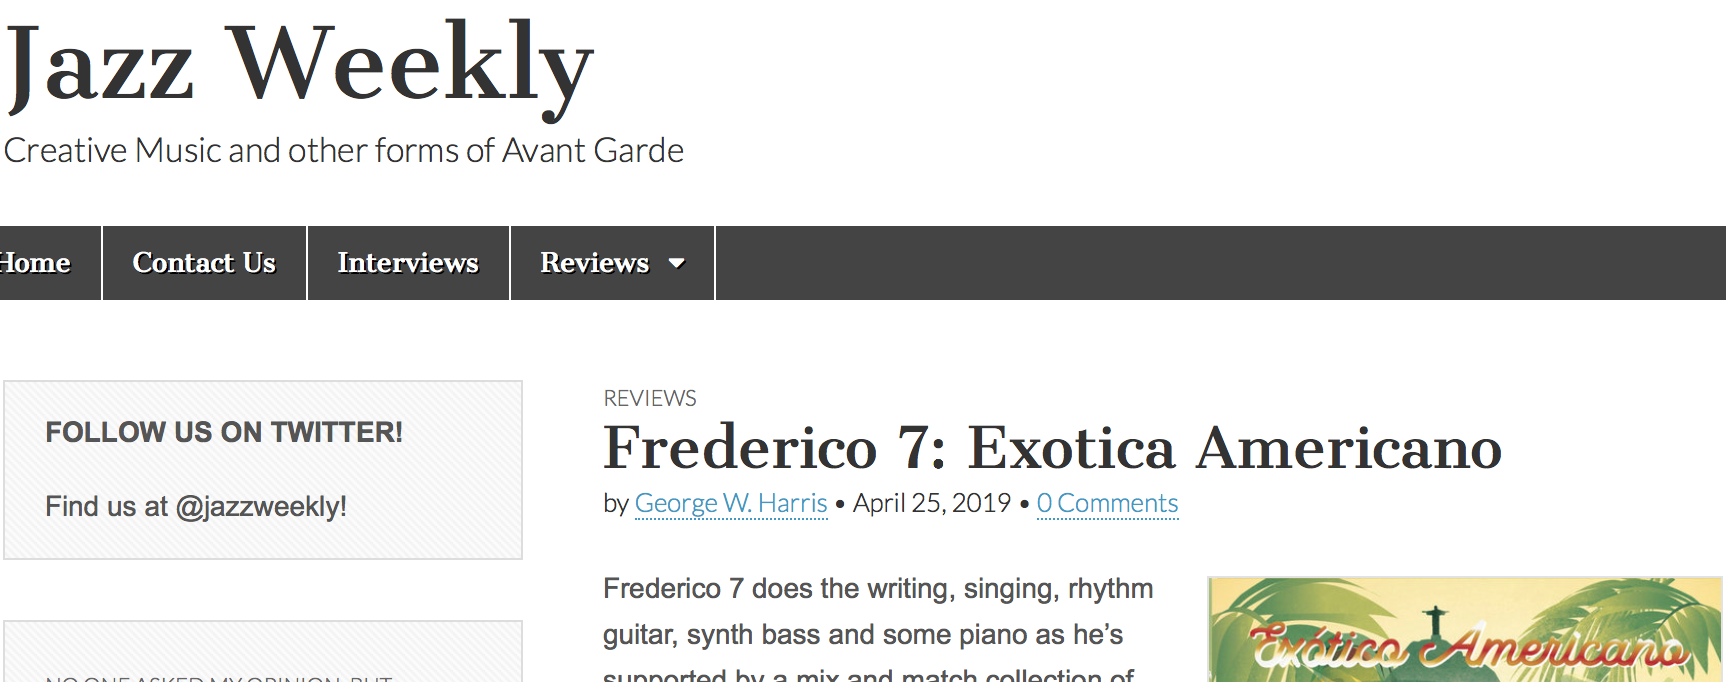 Jazz Weekly reviews Exótico Americano - Check out what Jazz Weekly had to say about us…